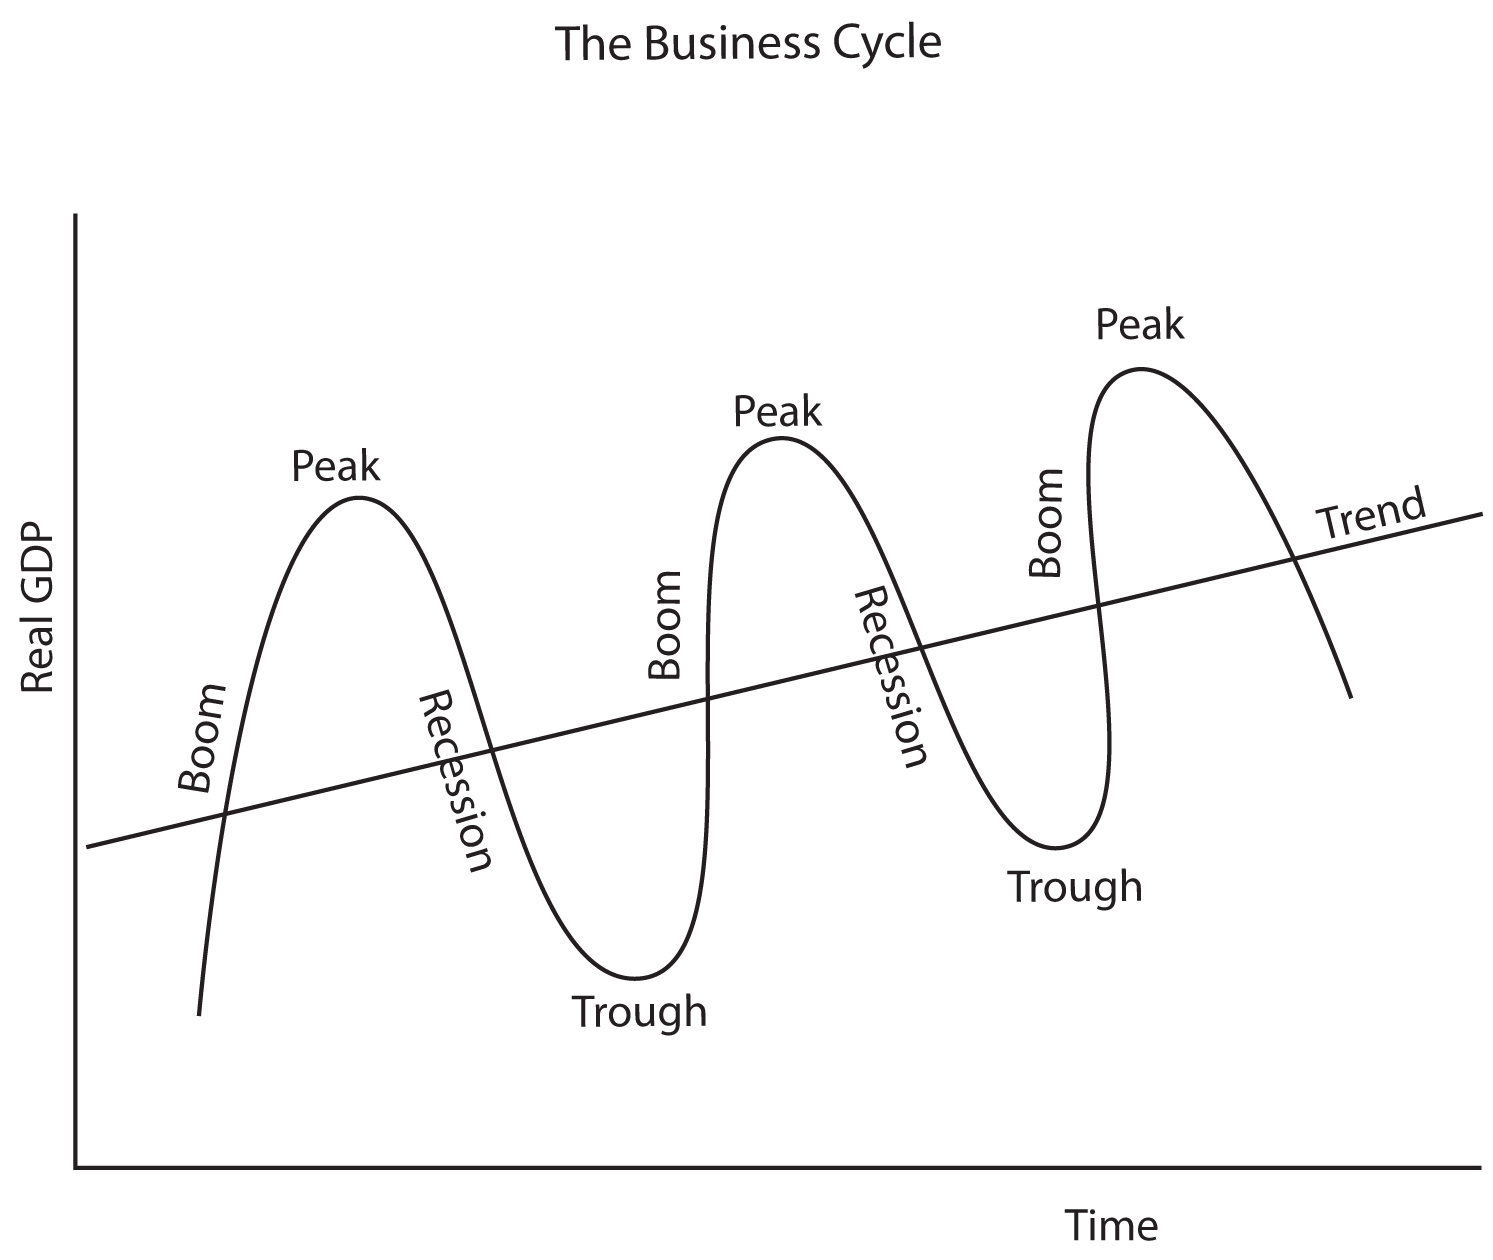 economics business cycle essay The line of cycle that moves above the steady growth line represents the expansion phase of a business cycle in the expansion phase, there is an increase in various economic factors, such as production, employment, output, wages, profits, demand and supply of products, and sales.